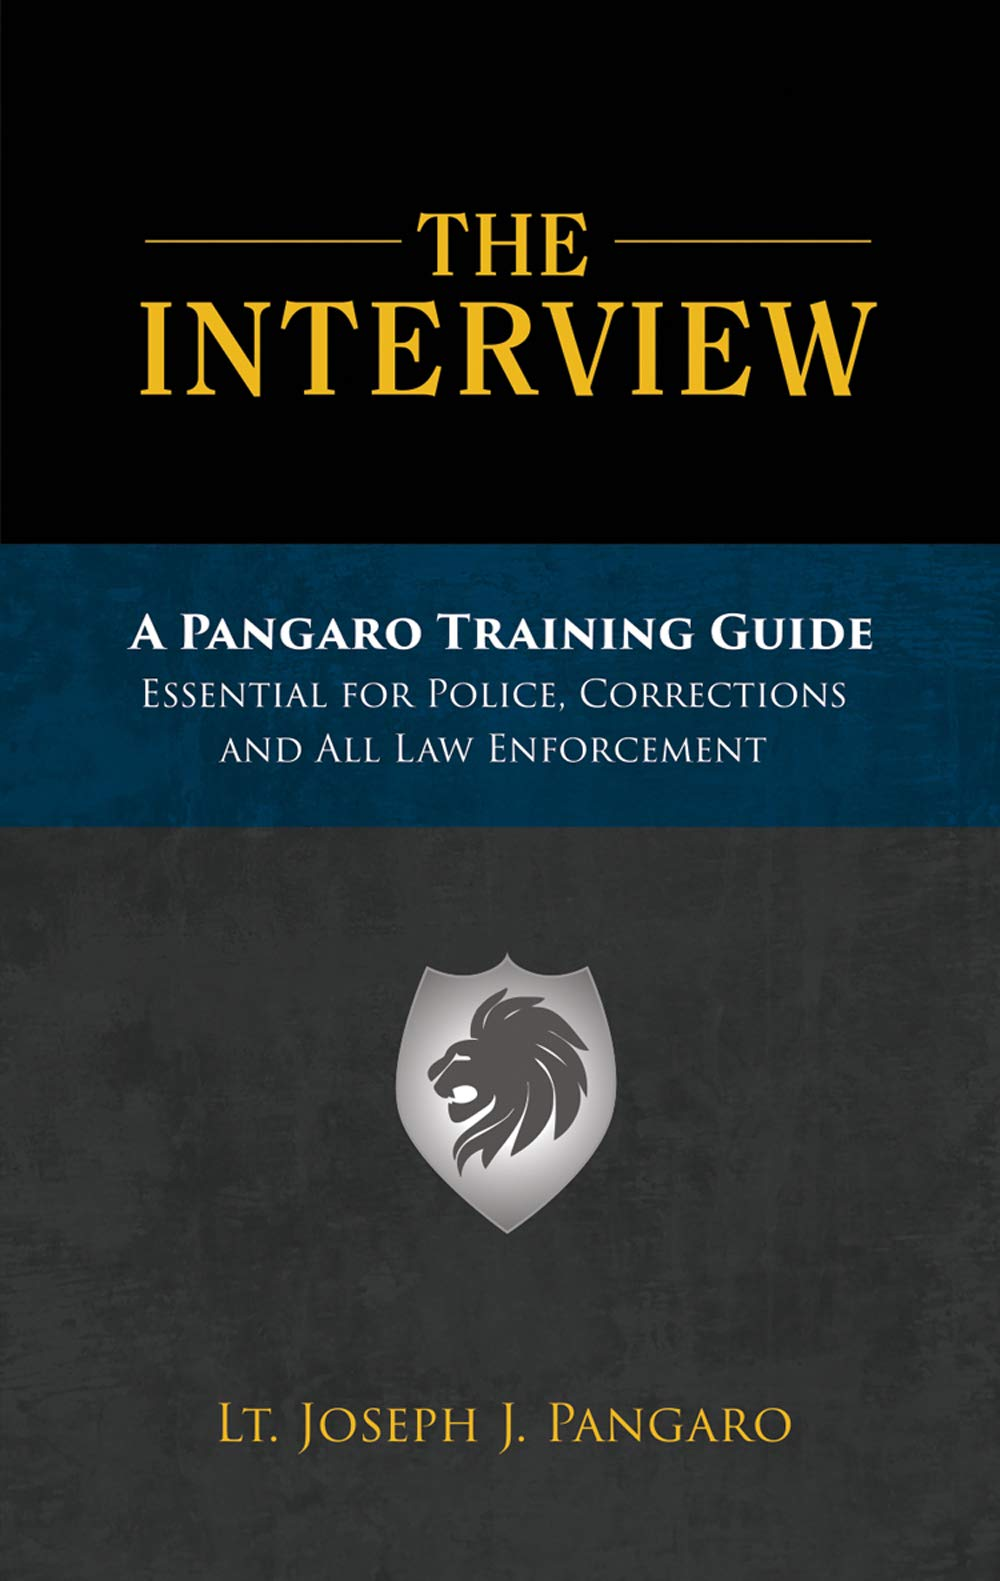 Pangaro Training Guide - The Interview: Essential for Police, Corrections and all Law Enforcement